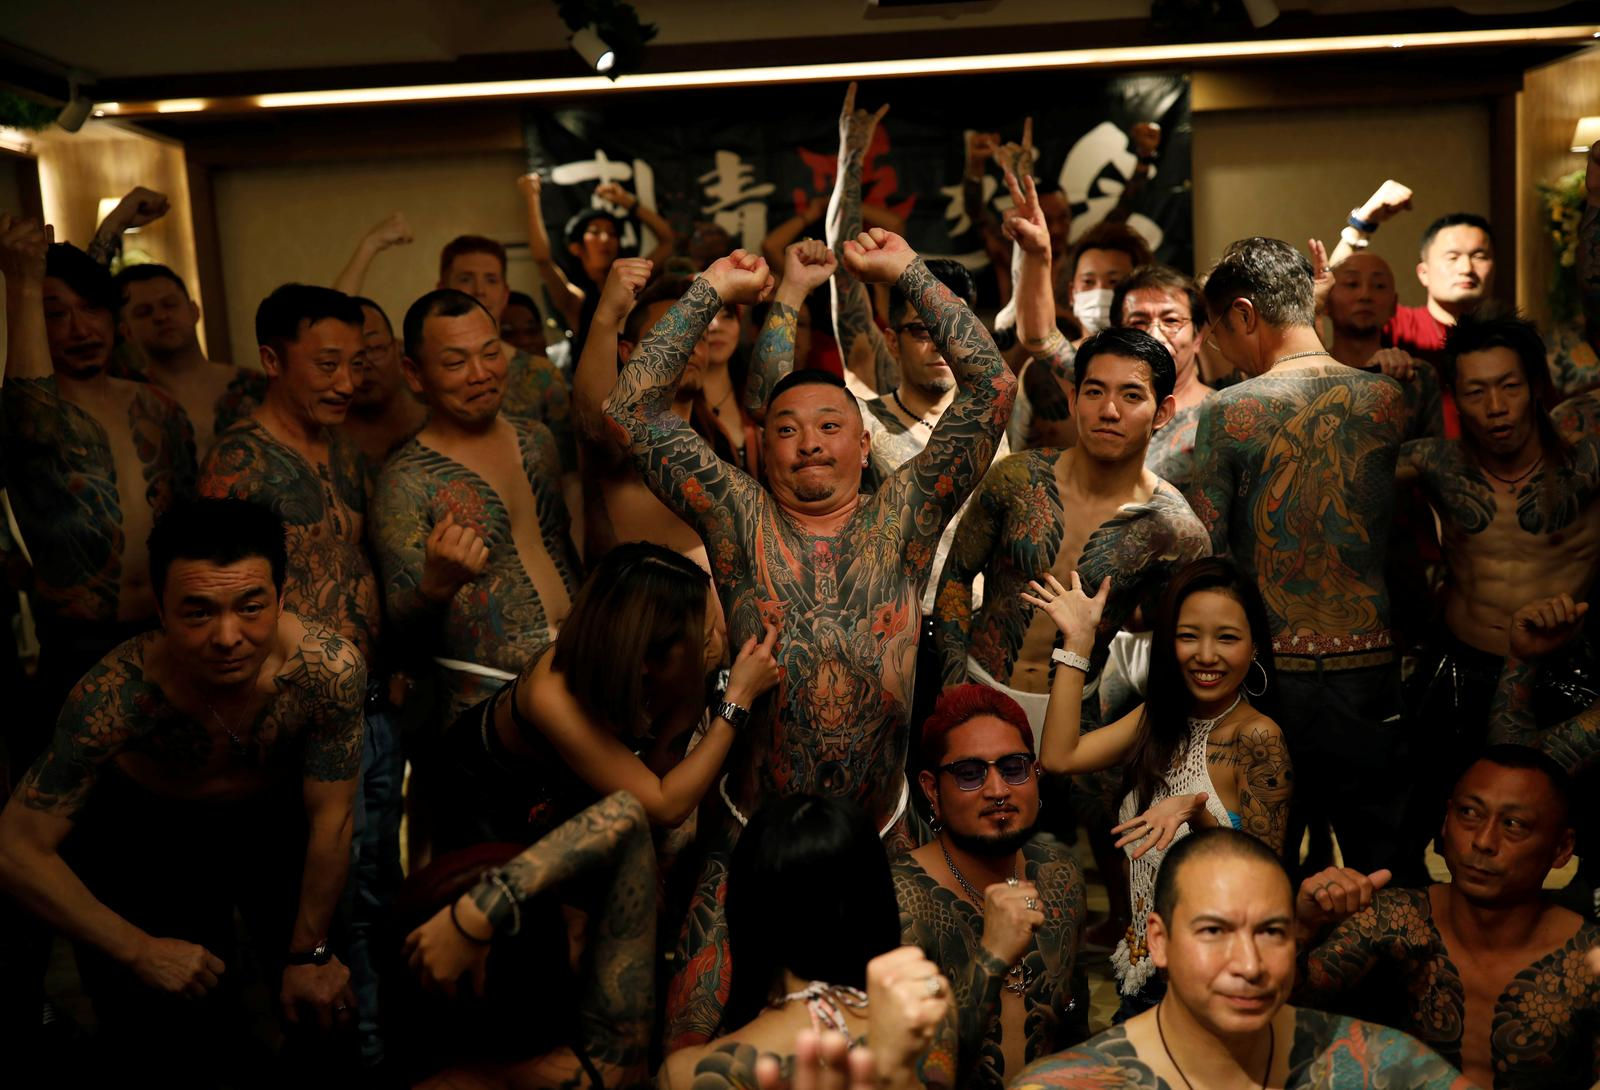 Japan Ink: Growing tribe proudly defies tattoo taboo, hopes for Olympian boost